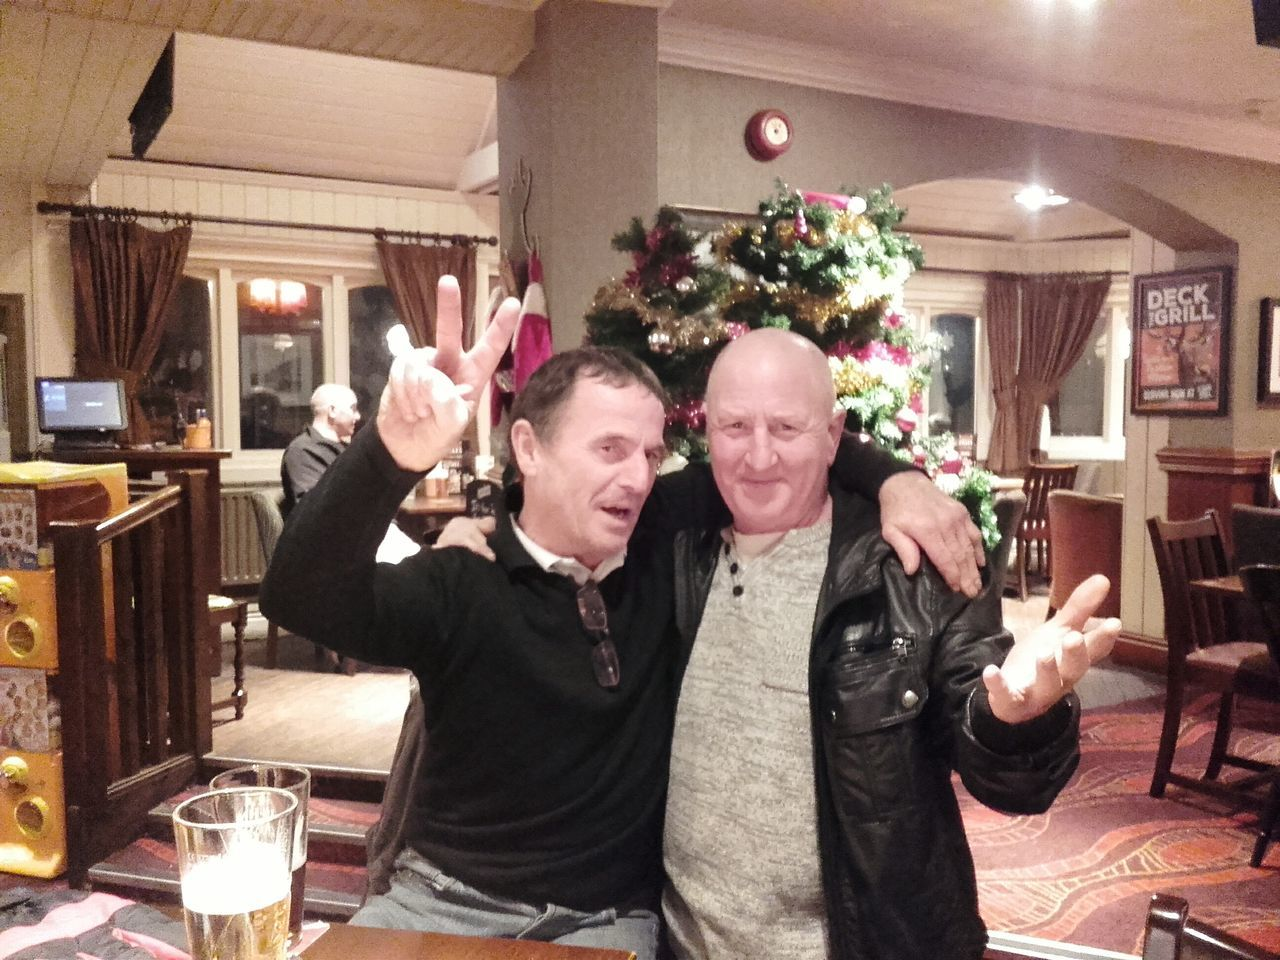 Christmas Time Good Times With Good Friends Showcase: December Protecting Where We Play Enjoying Life The Lodge Pub Derbyshire Uk Freindship Priceless